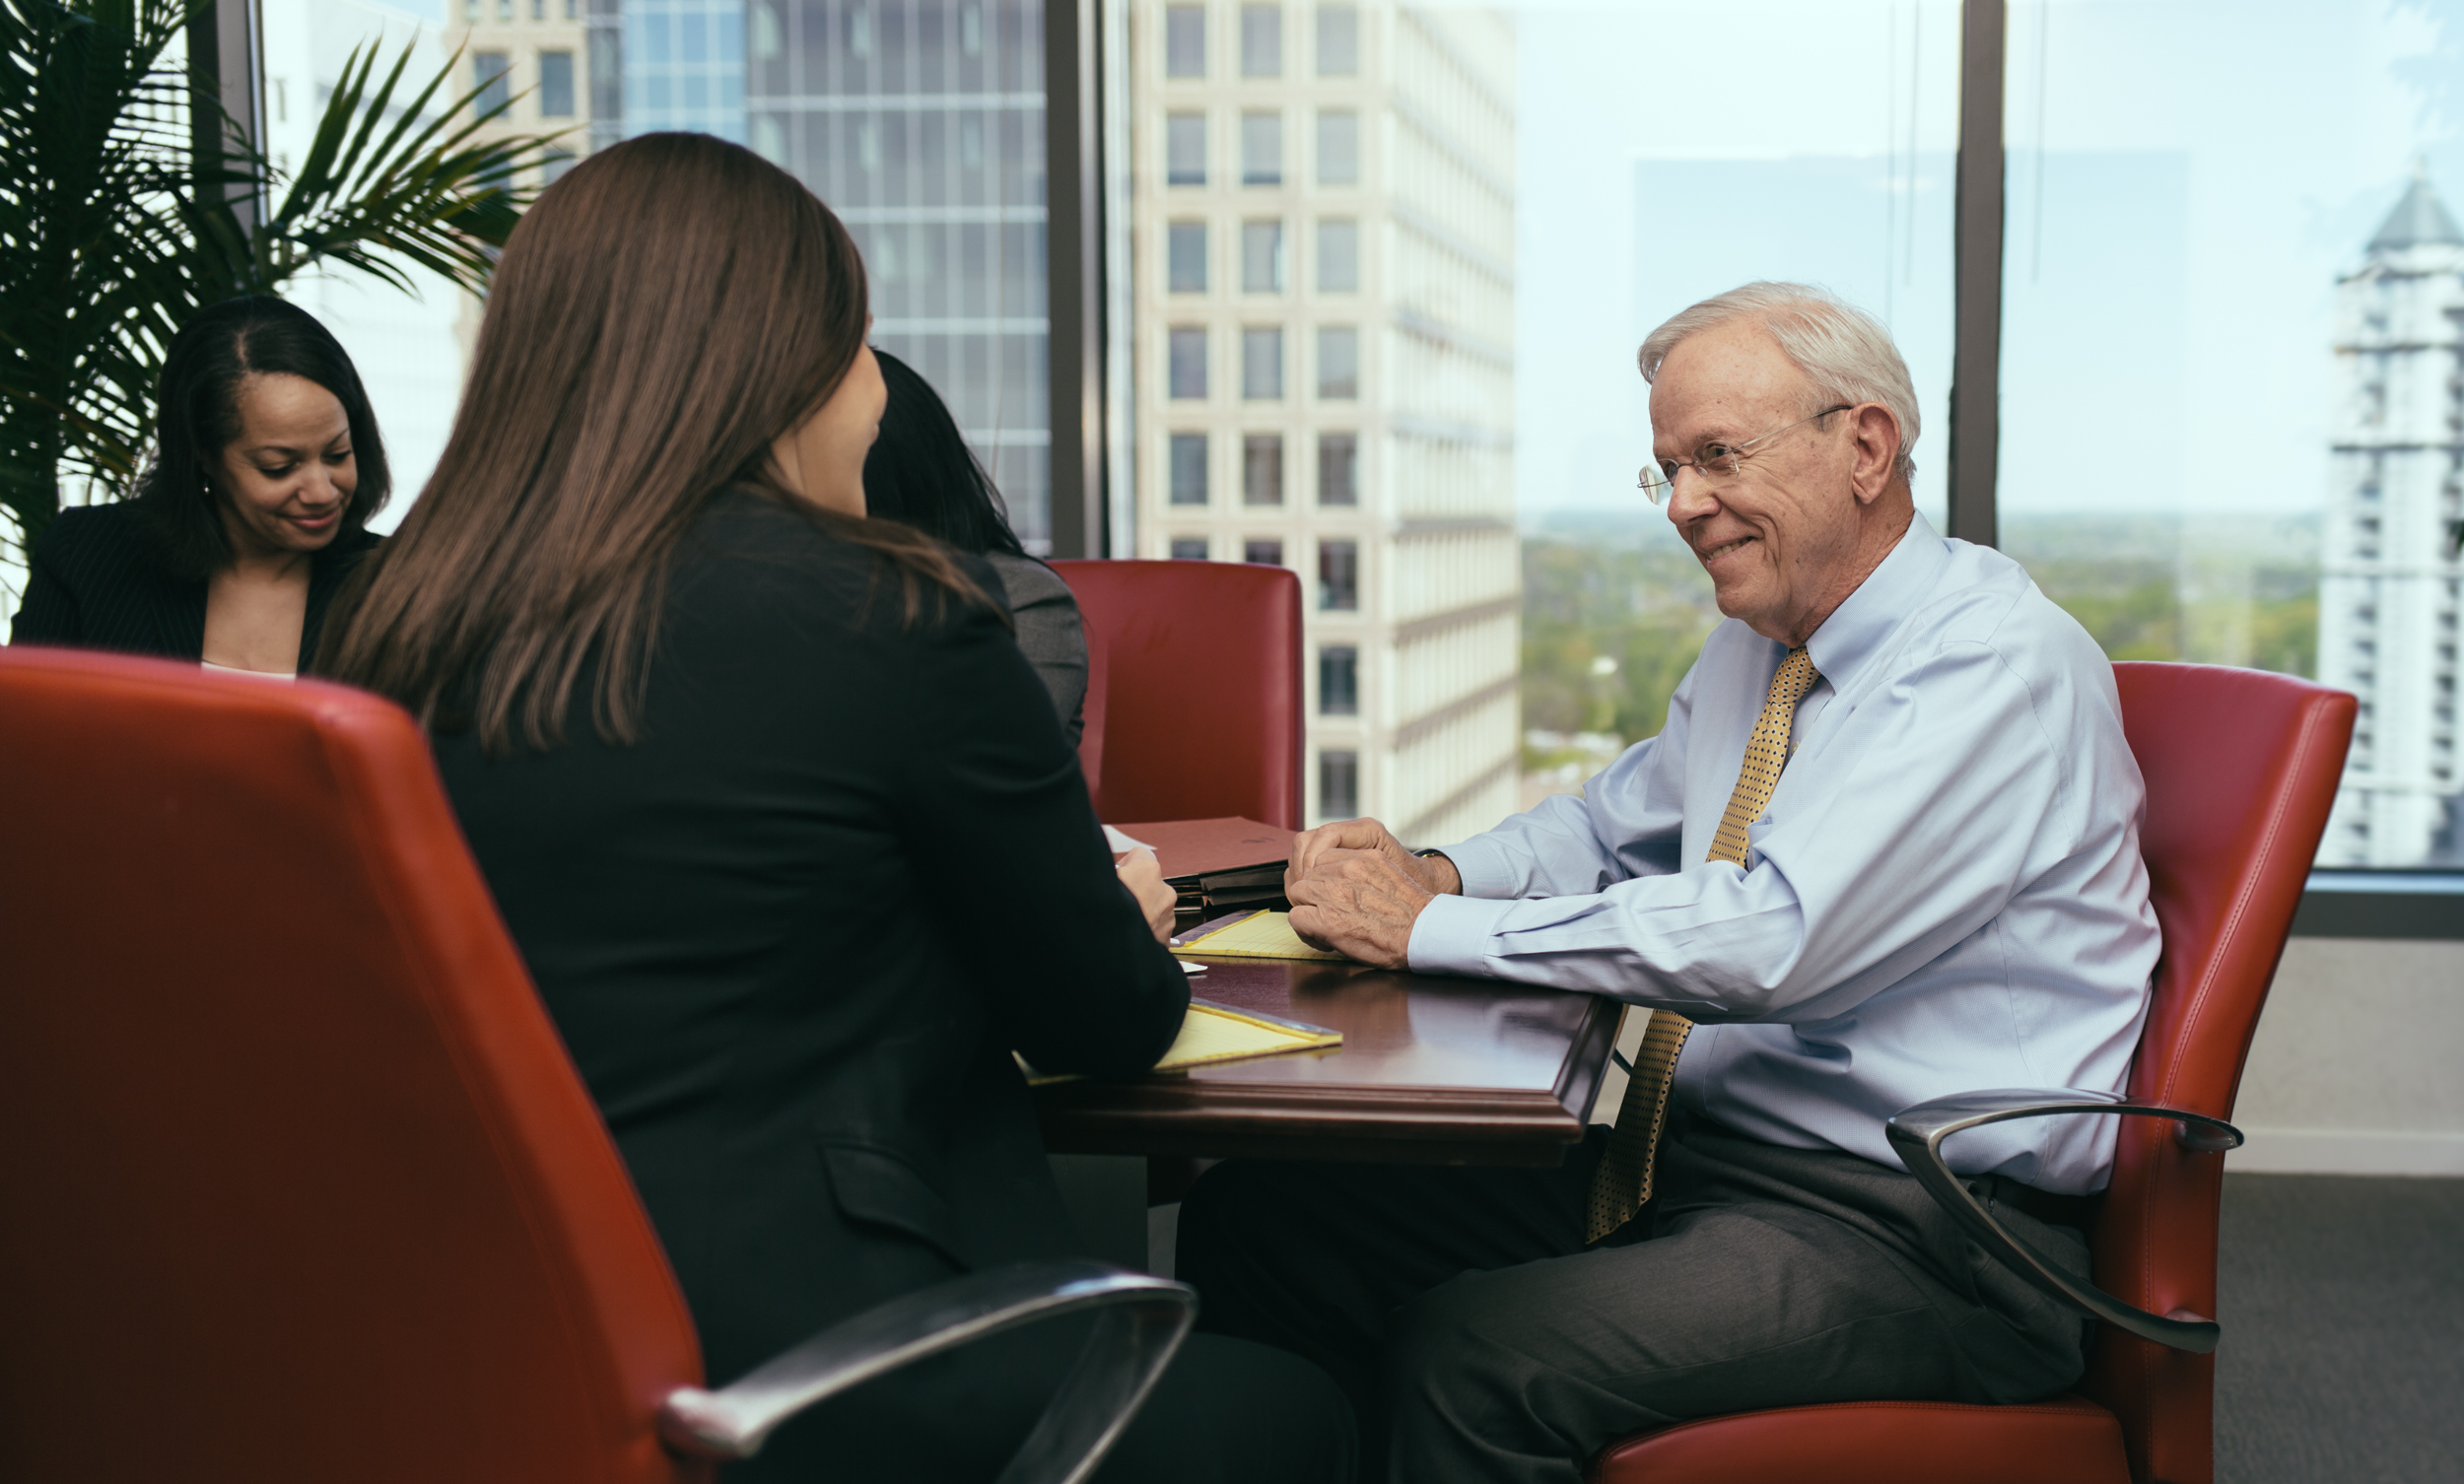 ADML - Wills, Trusts, and Estates Law Firm